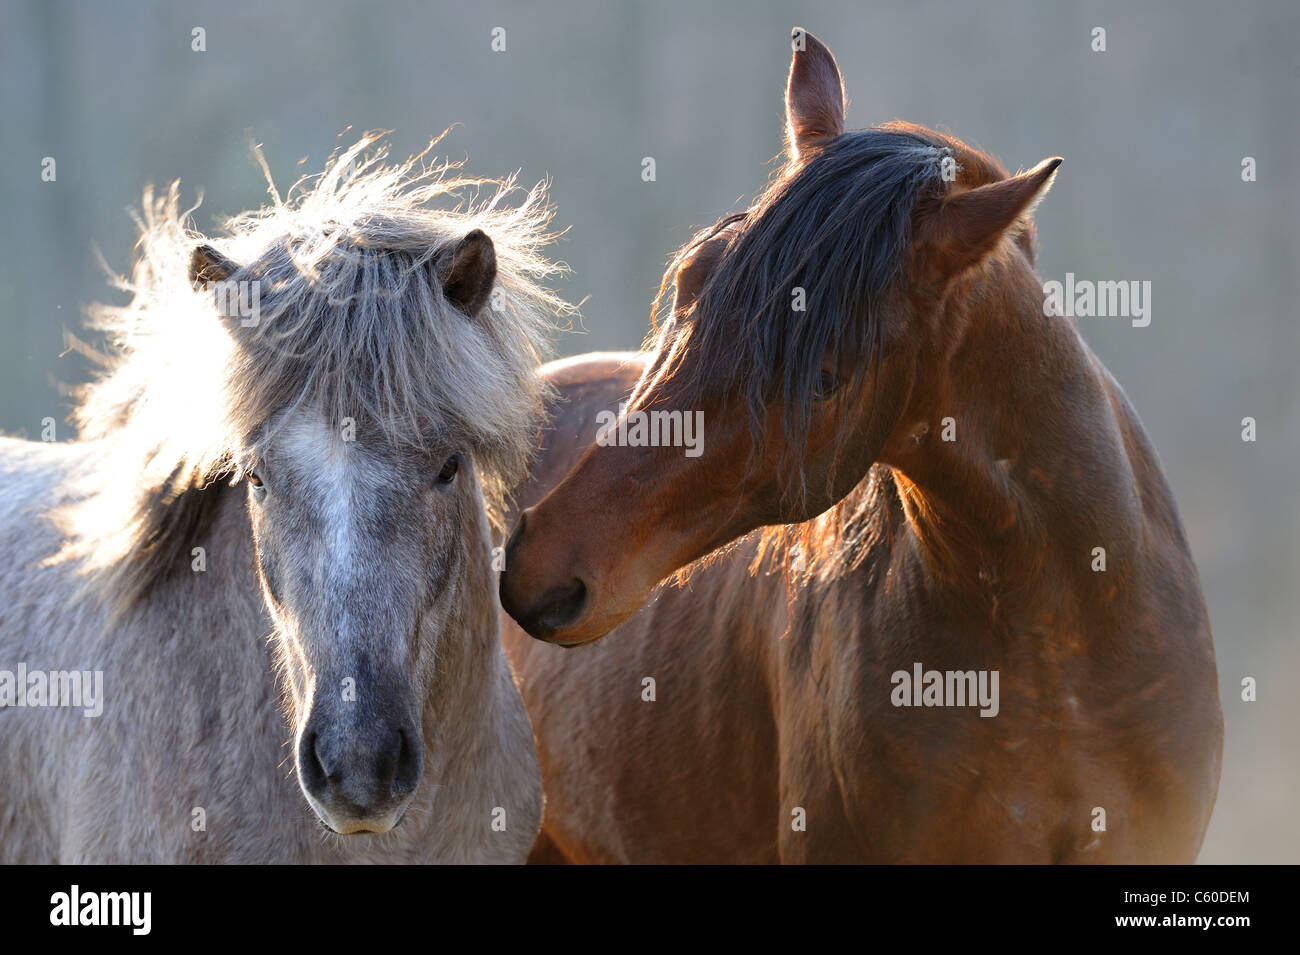 Mangalarga Marchador and Icelandic Horse (Equus ferus caballus). Two young stallions nuzzling on a meadow. - Stock Image